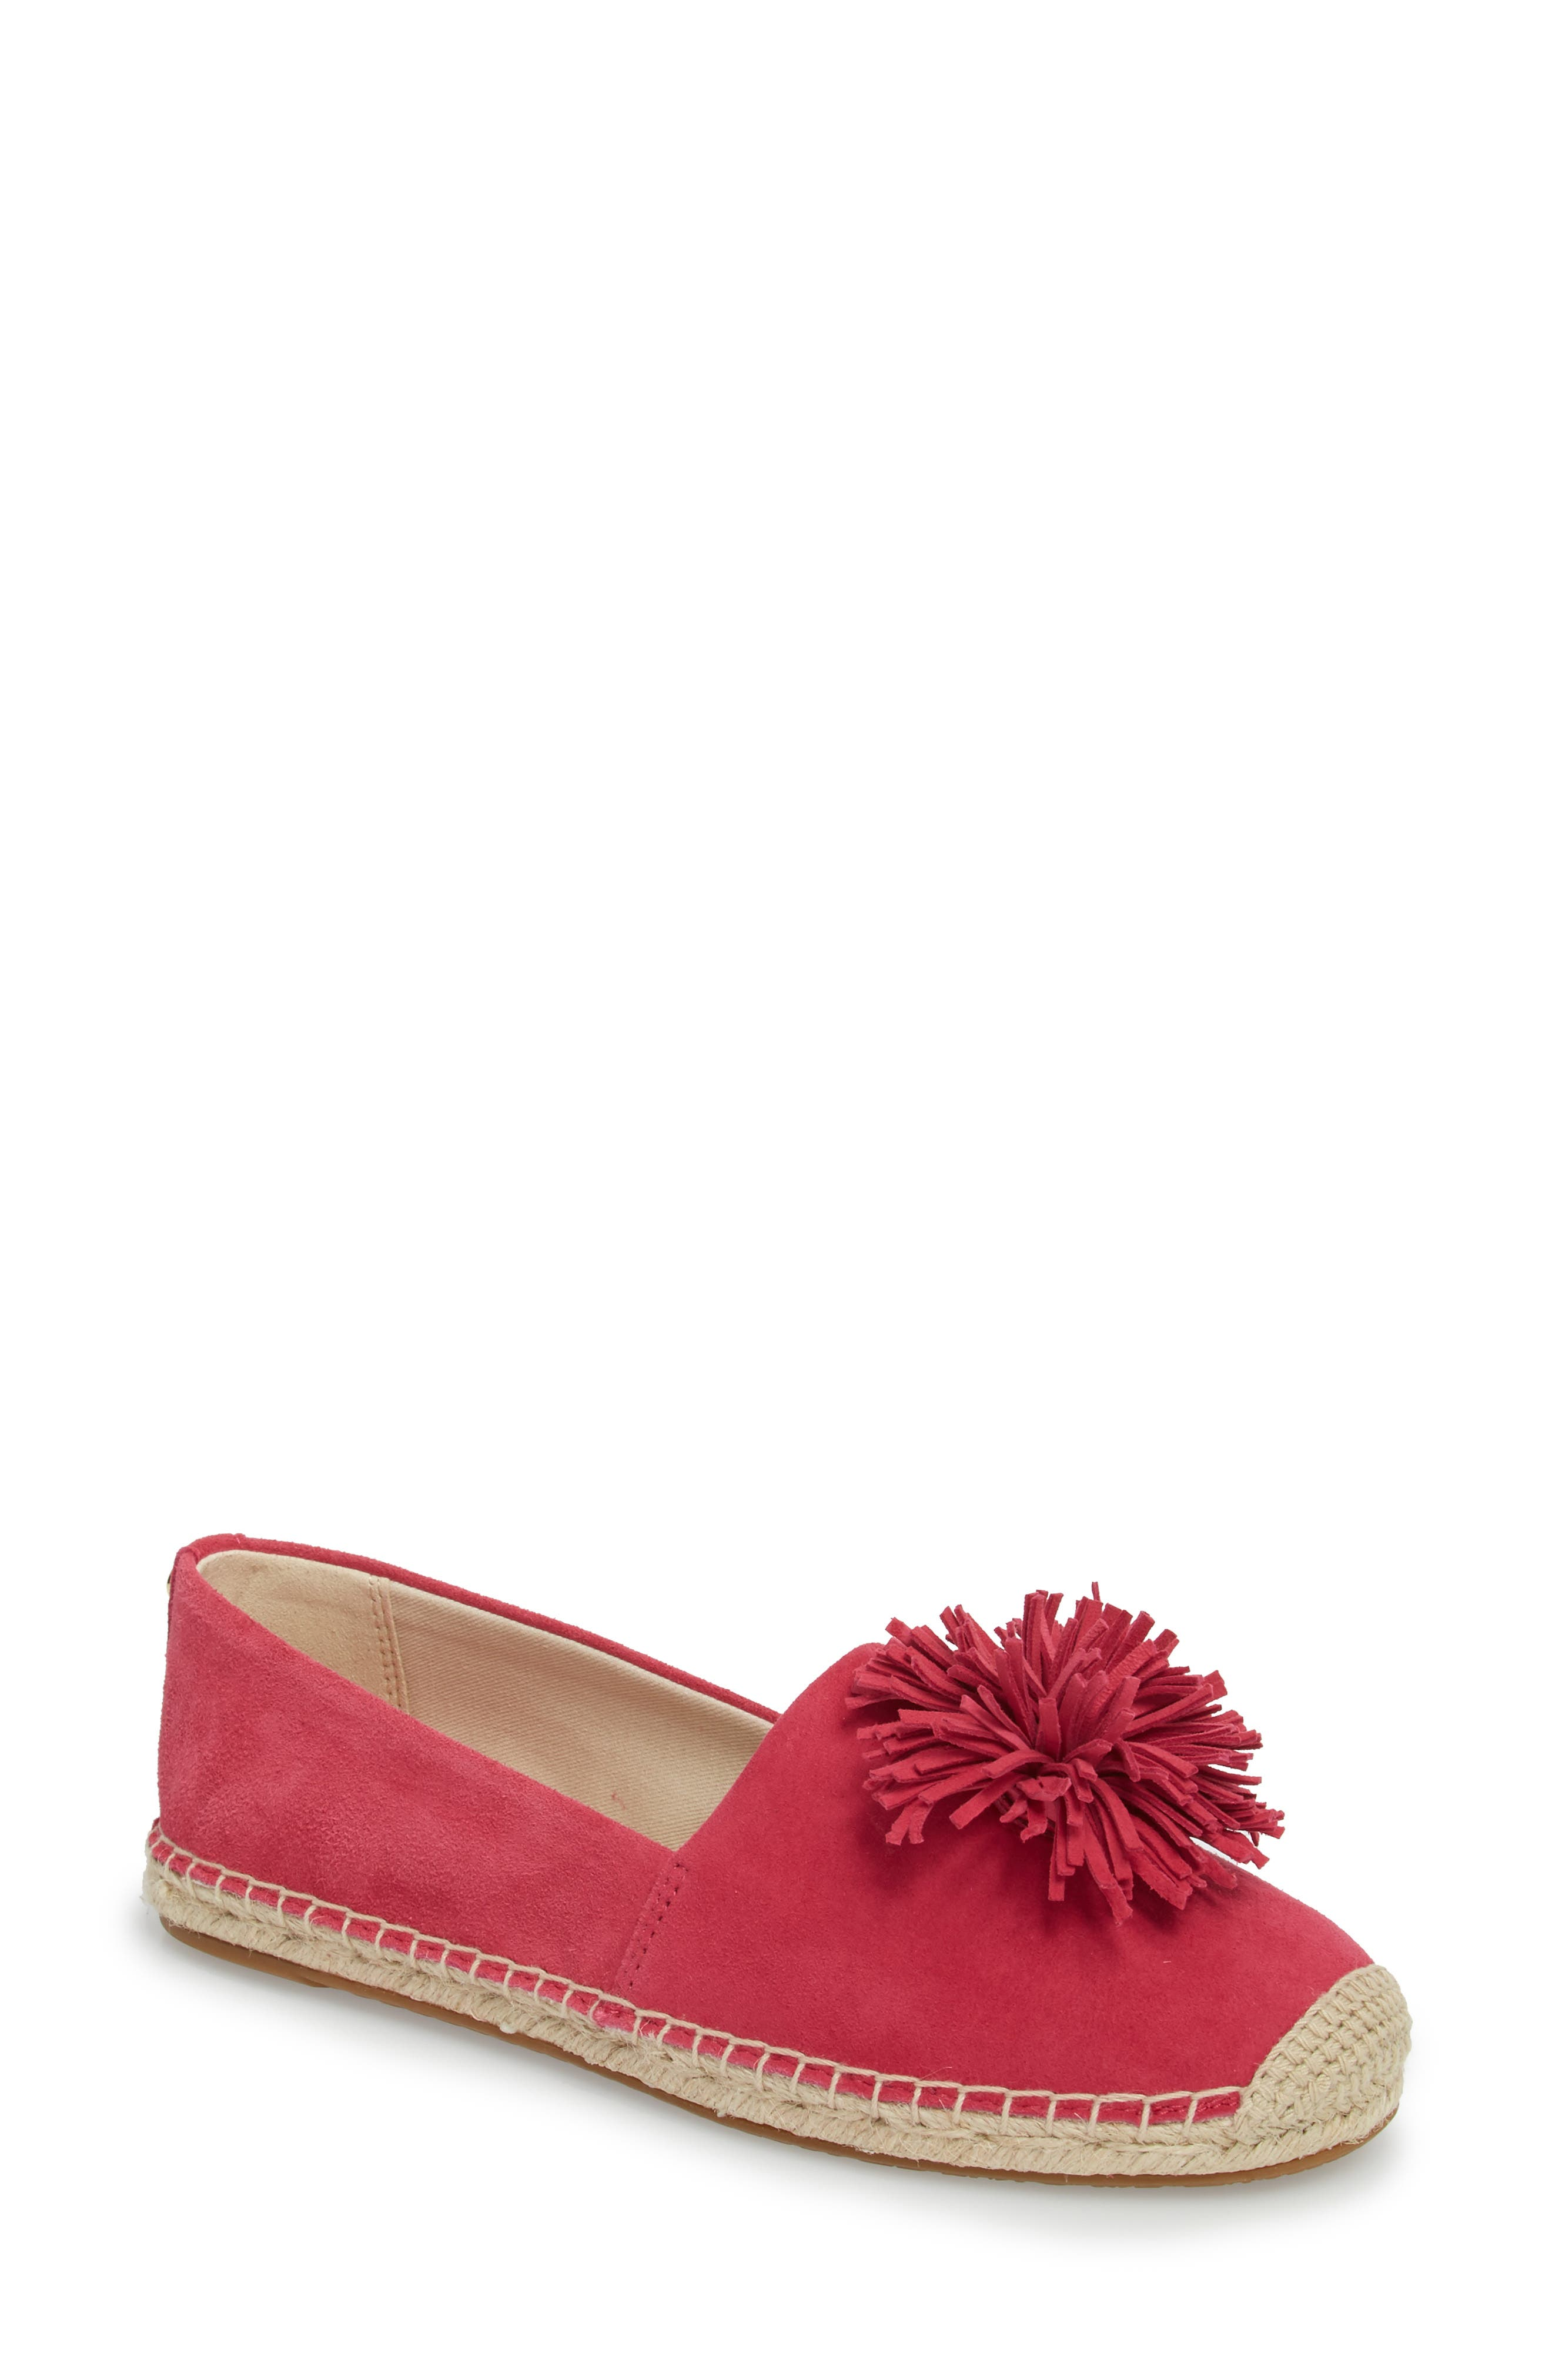 Lolita Slip-On,                             Main thumbnail 1, color,                             Ultra Pink Suede